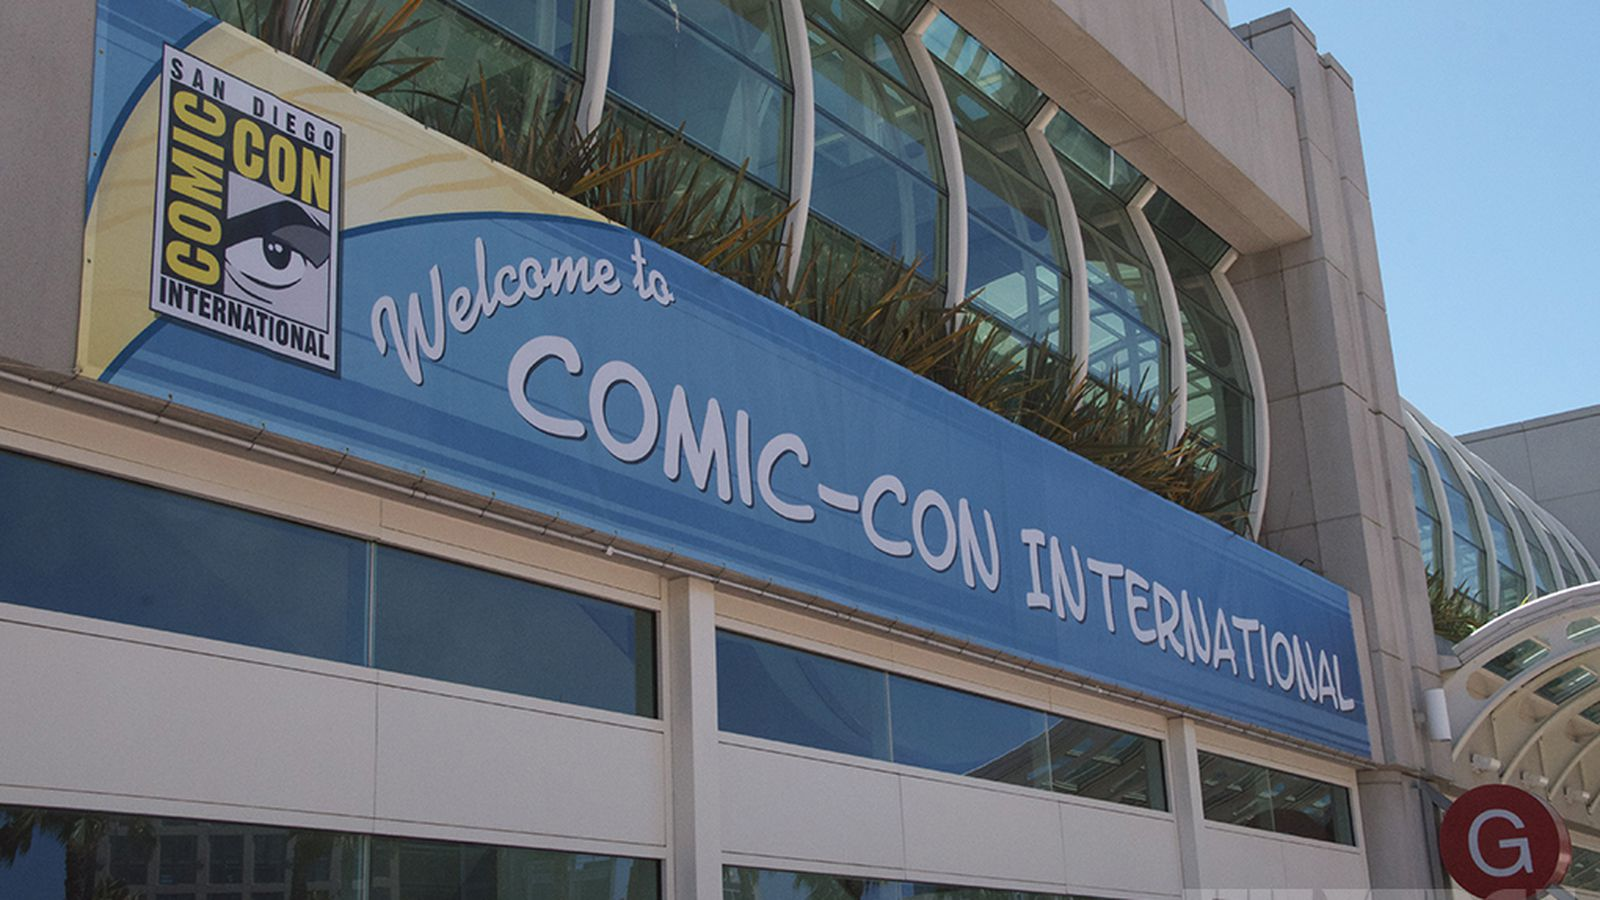 Why did United try to ban Comic-Con travelers from checking comic books?